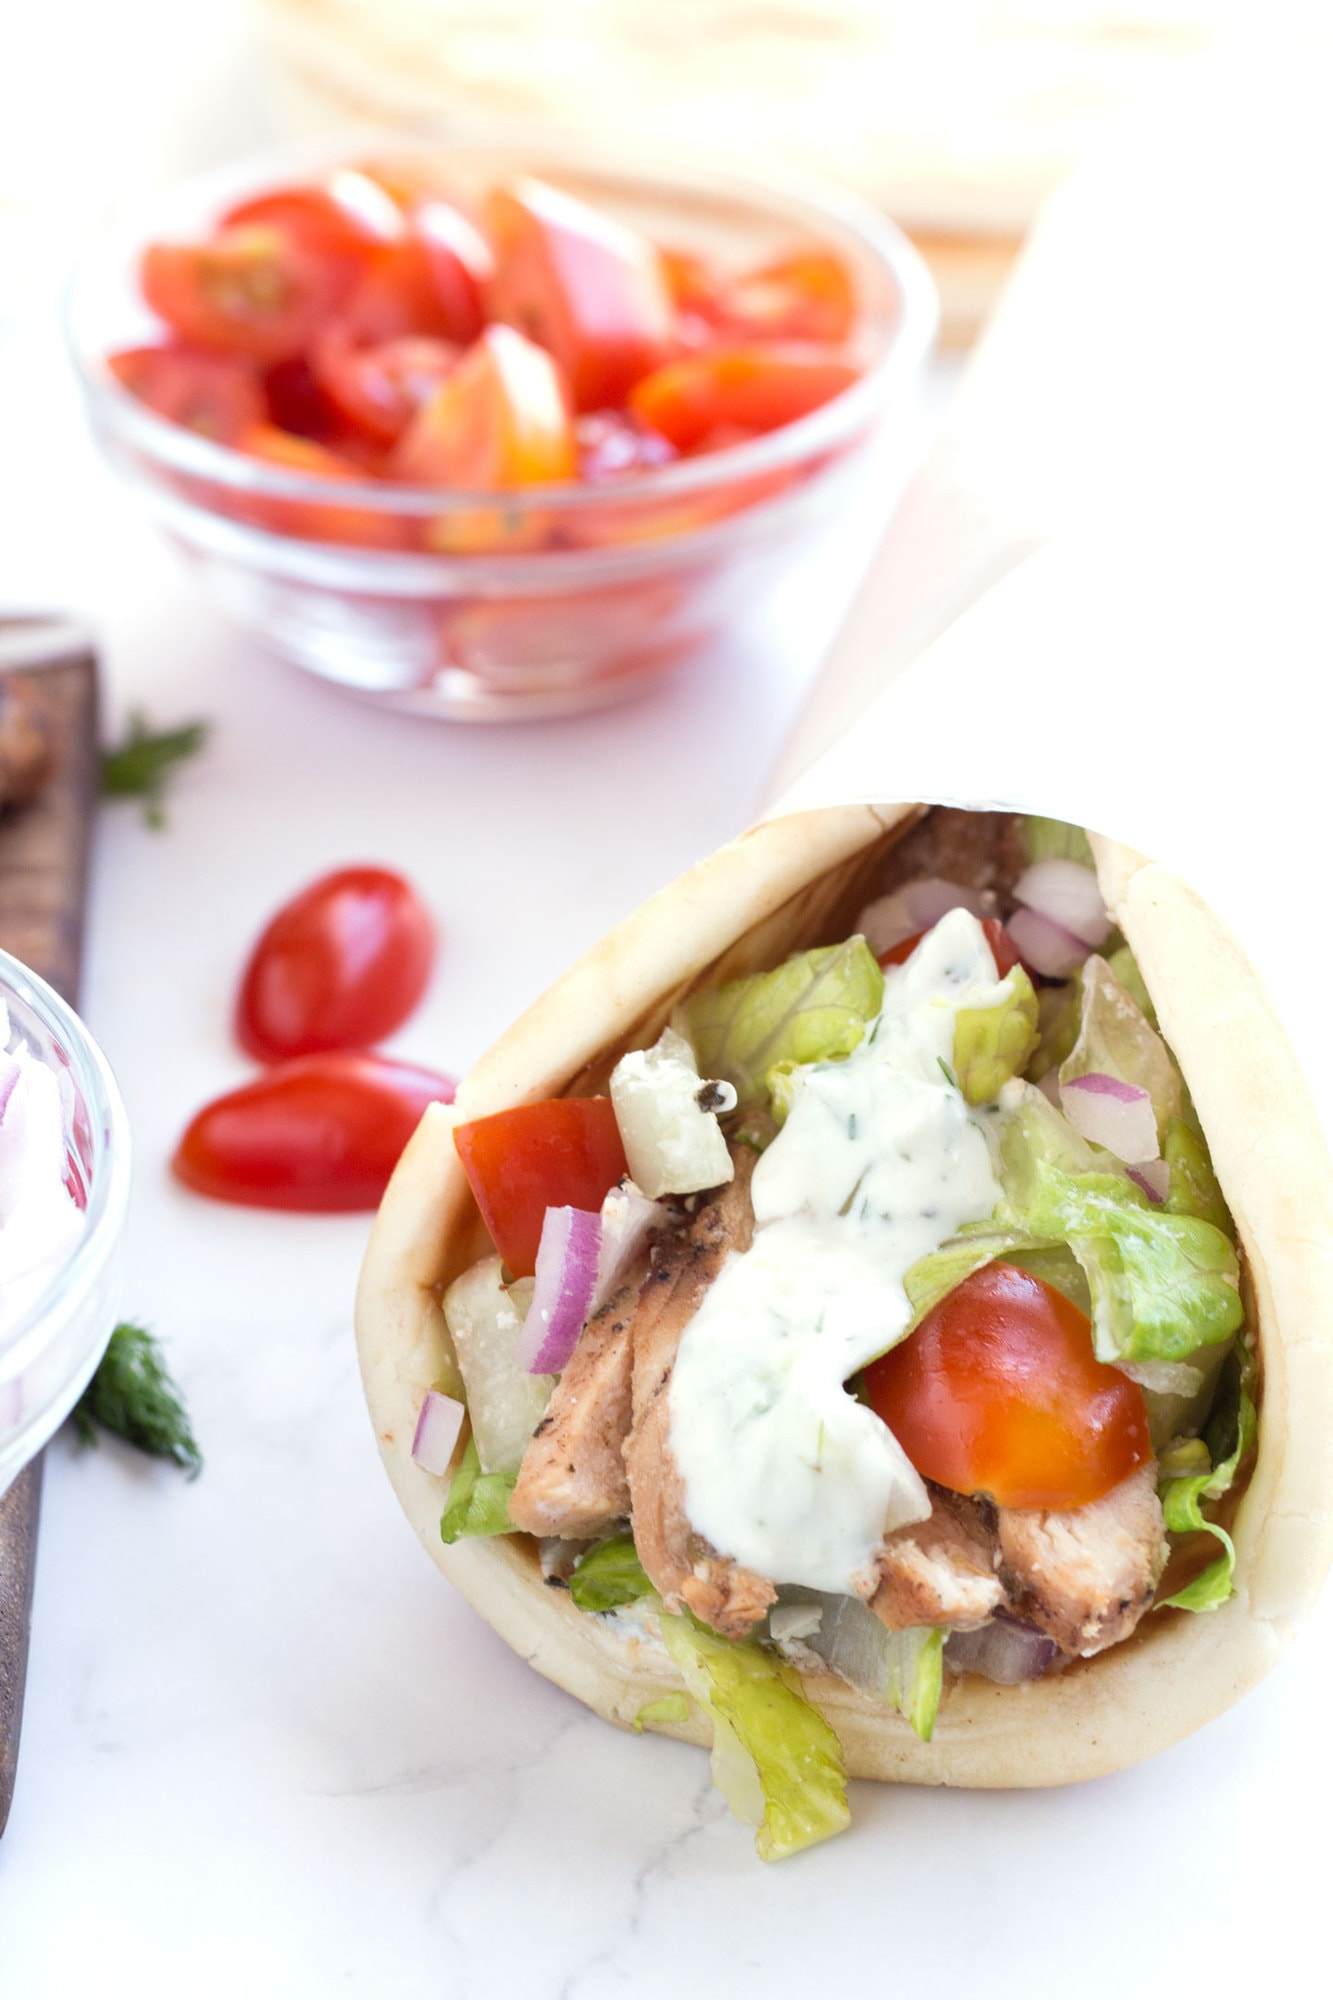 Grilled chicken wrapped in pita with tomatoes, lettuce and tzatziki.